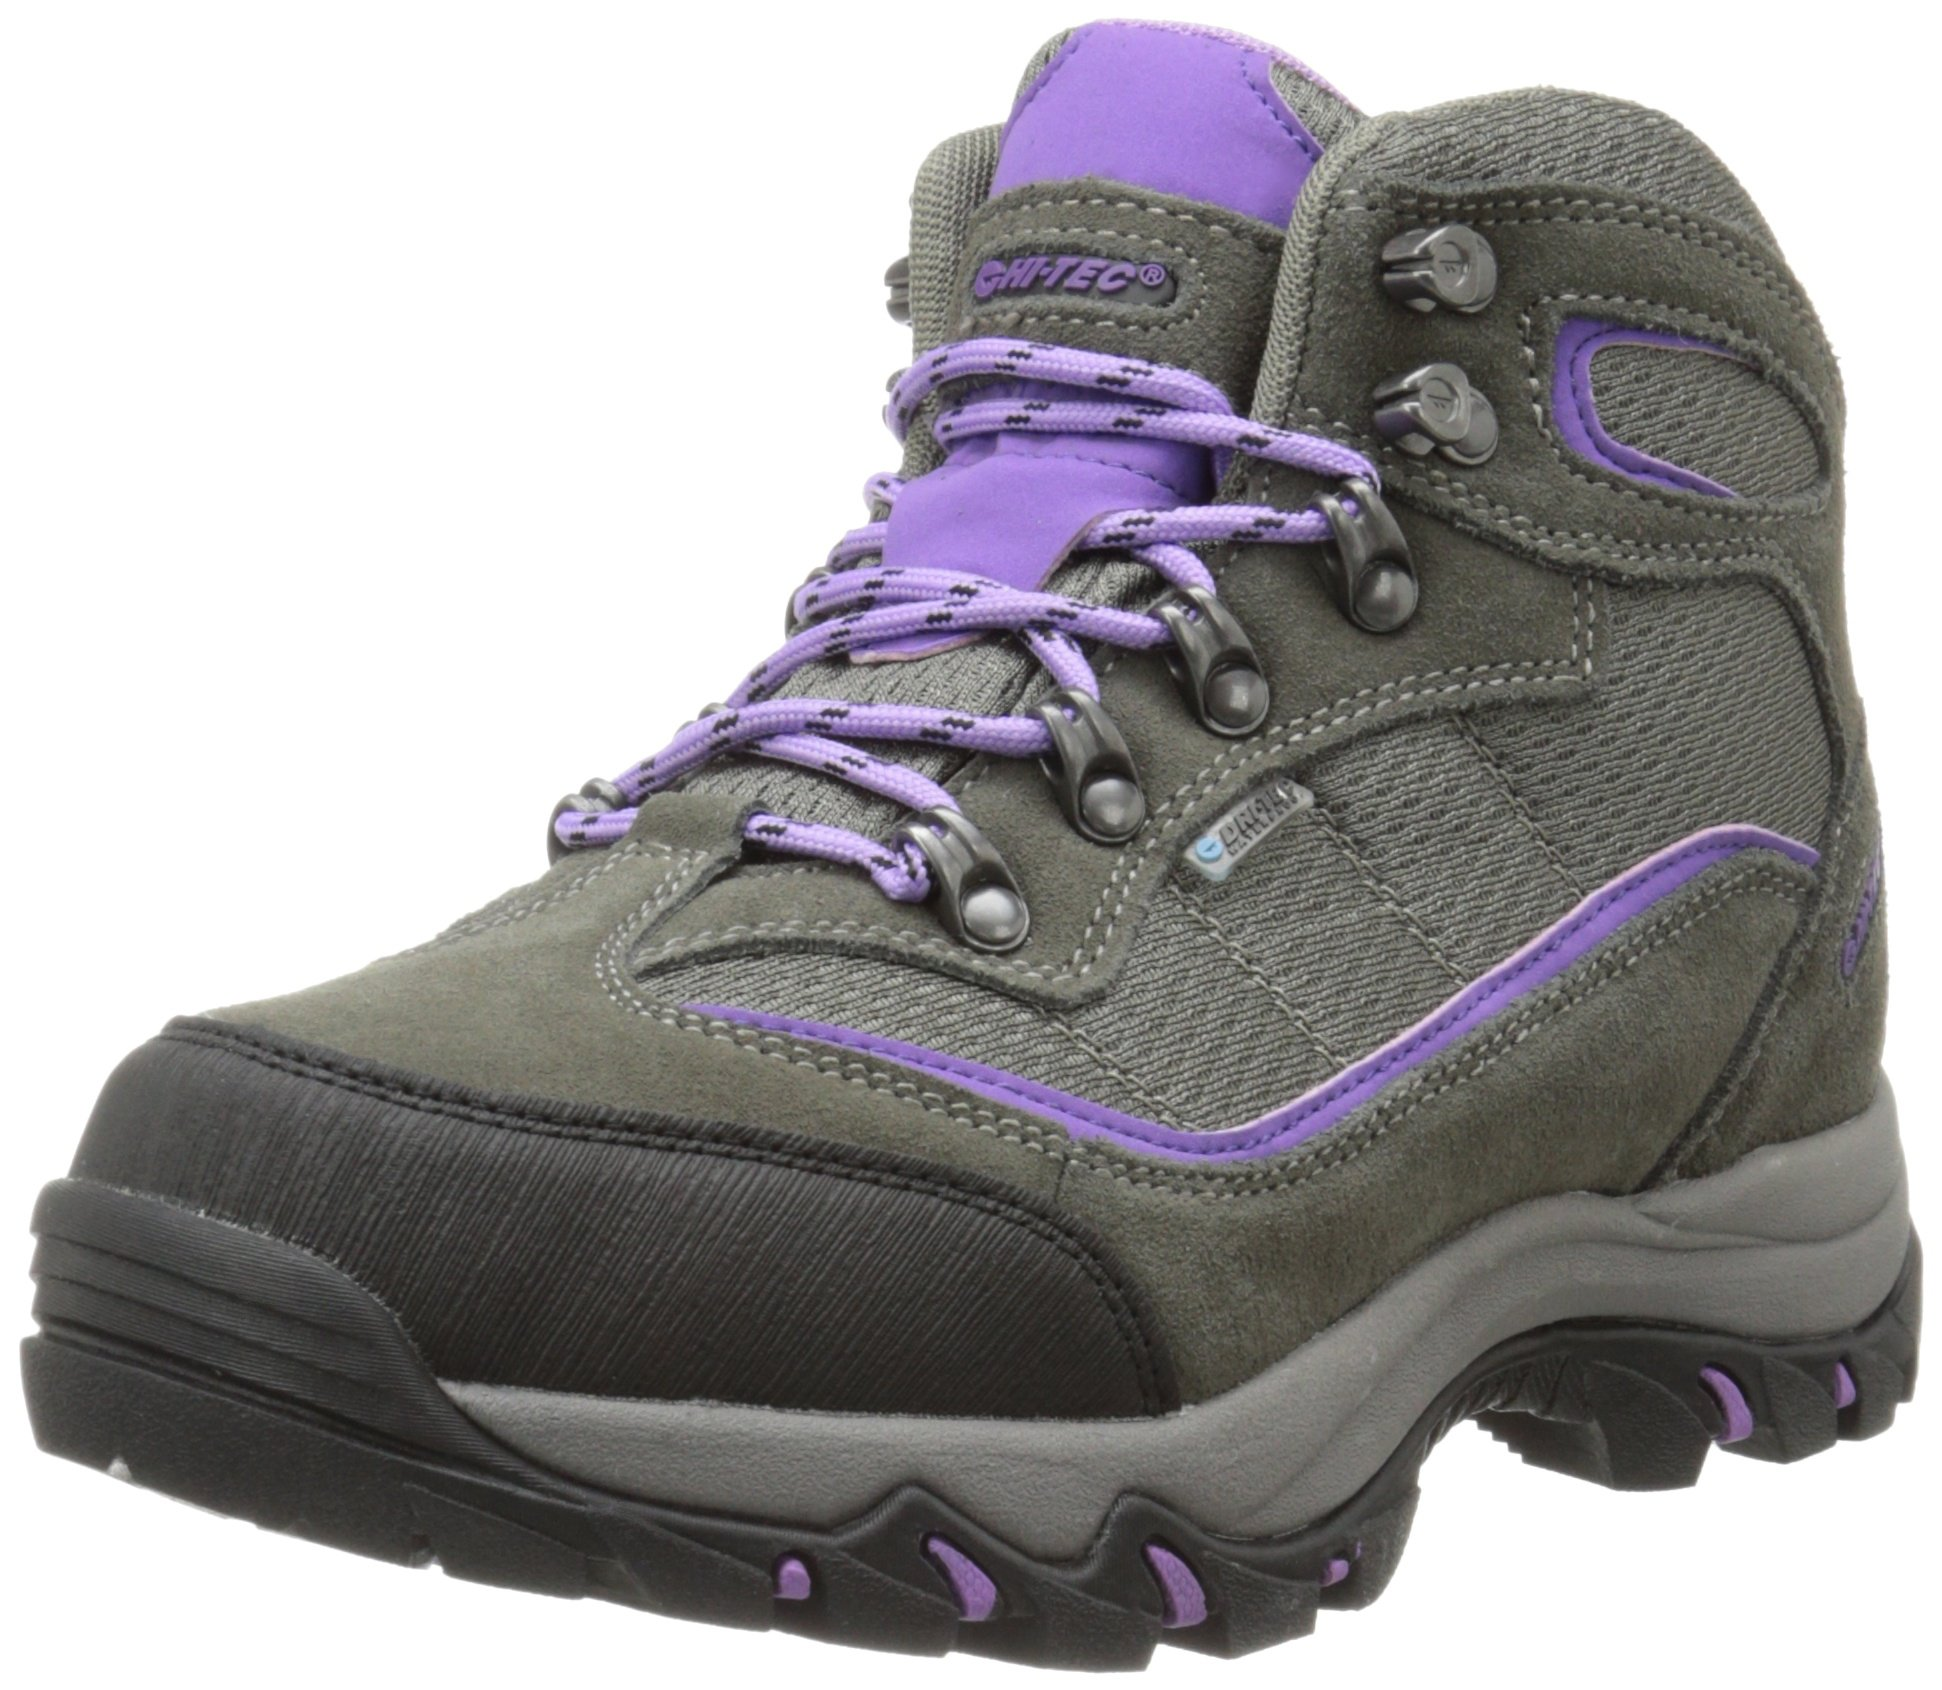 Hi-Tec Women's Skamania Mid Waterproof Hiking Boot, Grey/Viola,6 M US